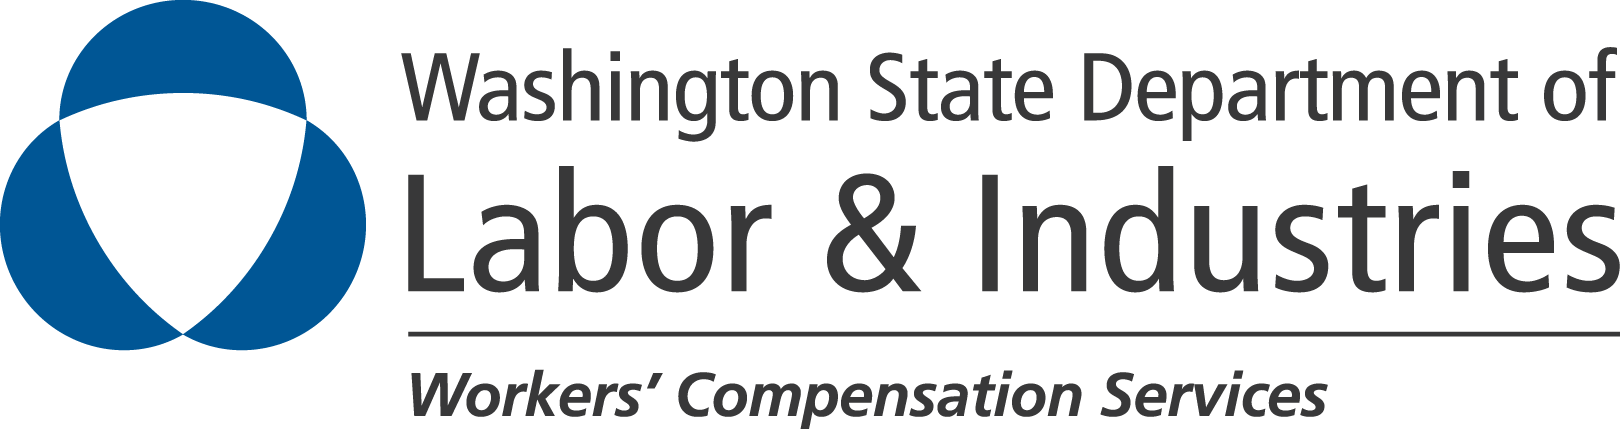 Image result for washington state department of labor images